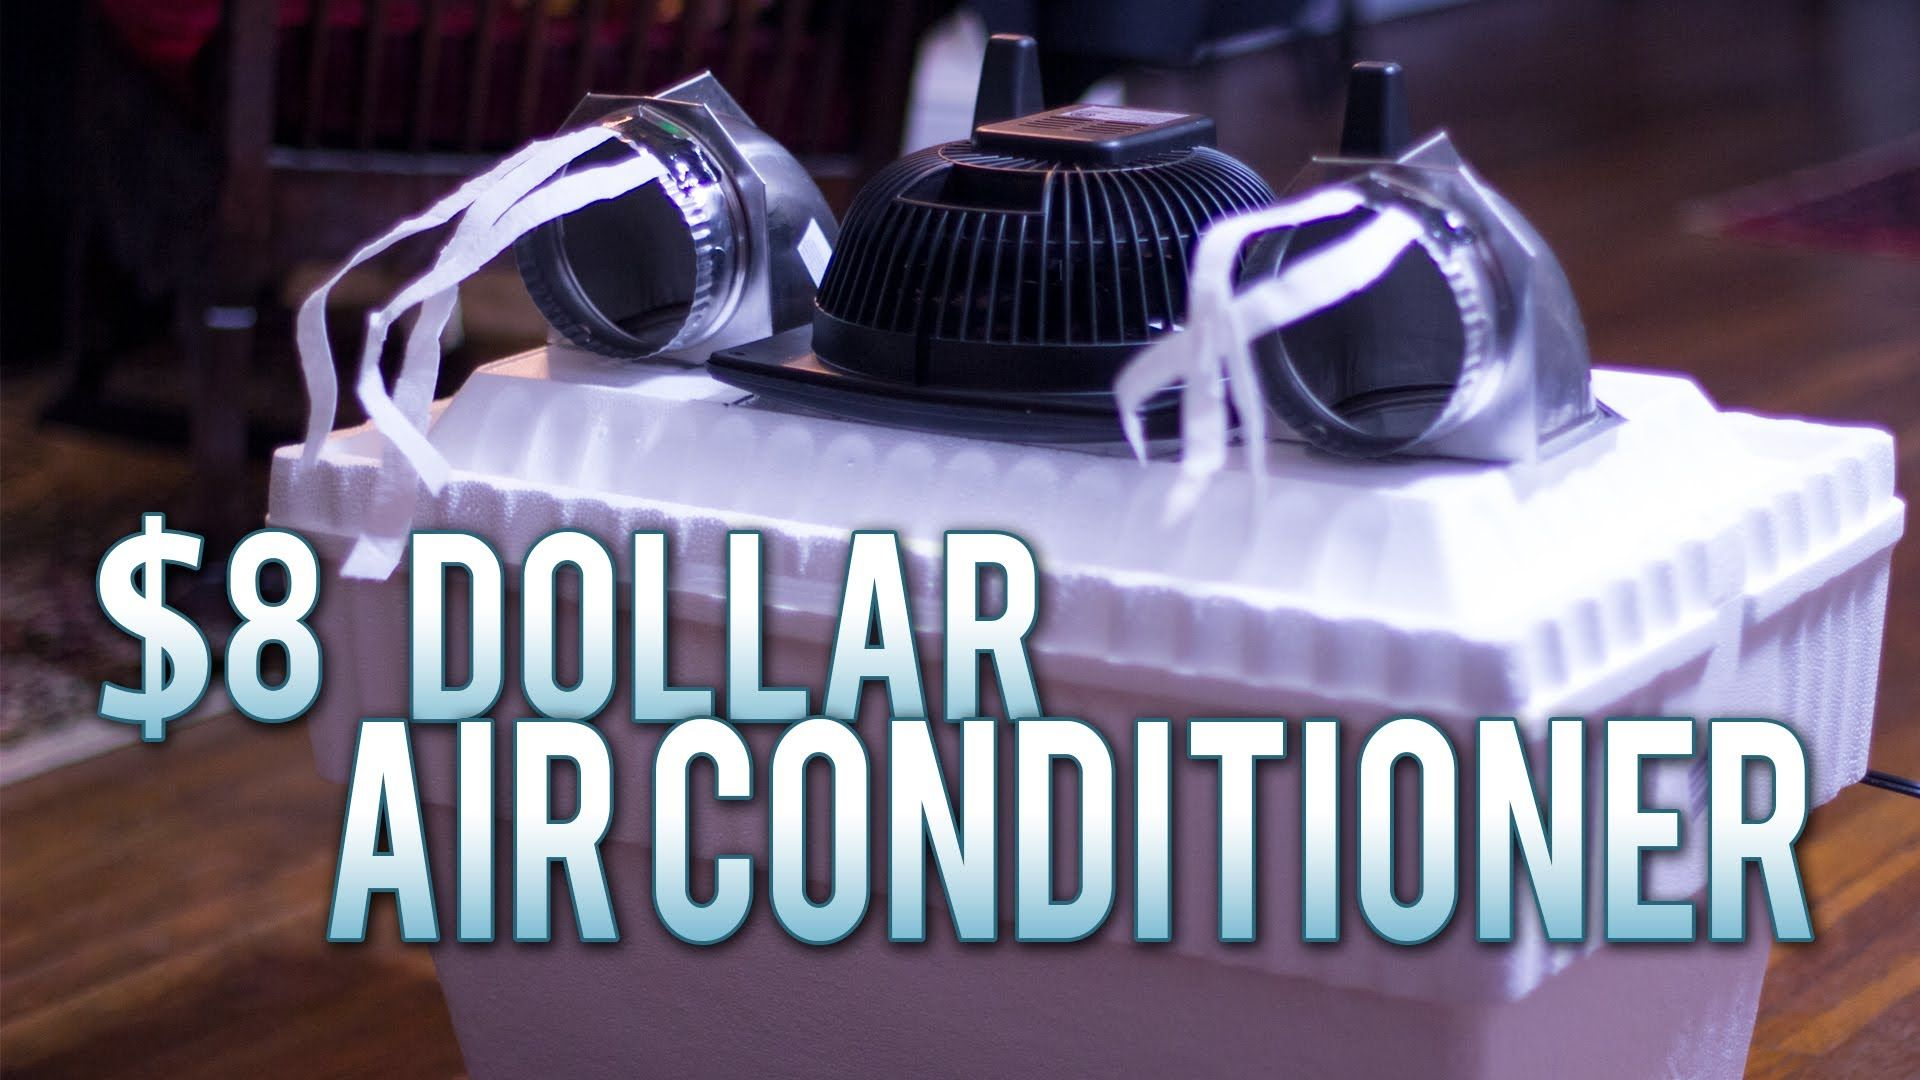 8 Homemade Air Conditioner Works Flawlessly! im going